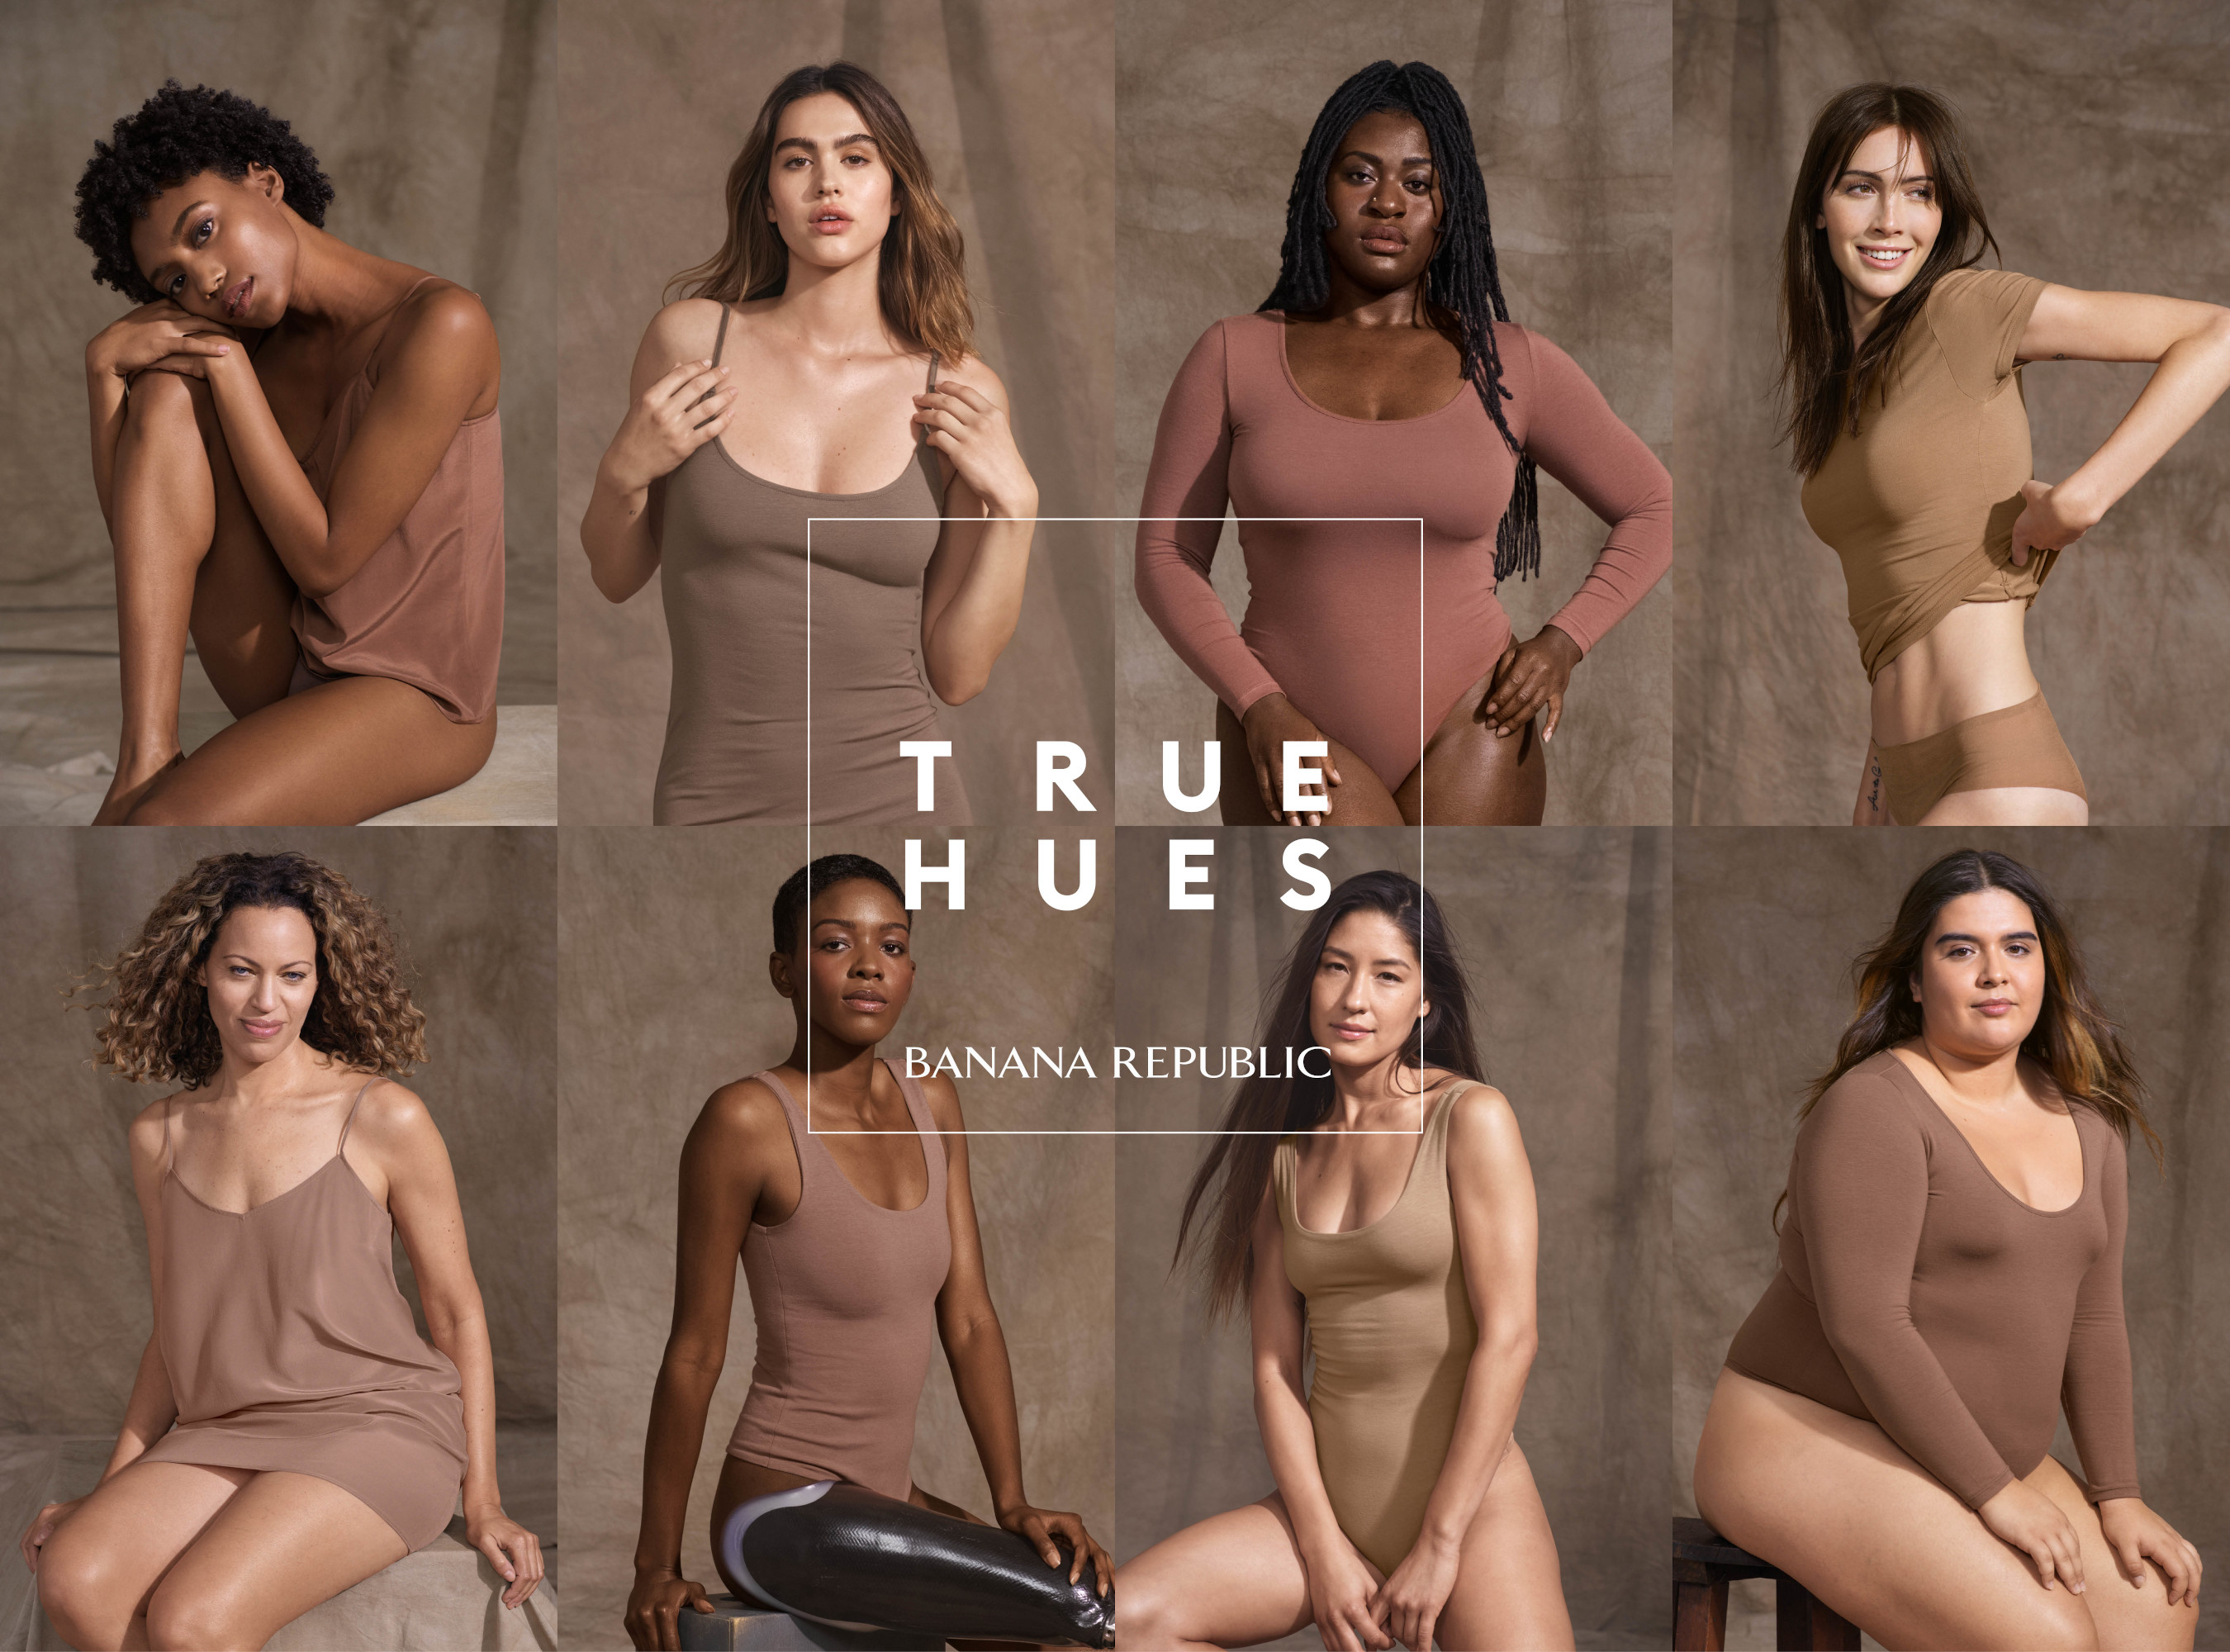 Beginning with Black History Month, Banana Republic's True Hues campaign champions BIPOC talent in front of, and behind, the camera.